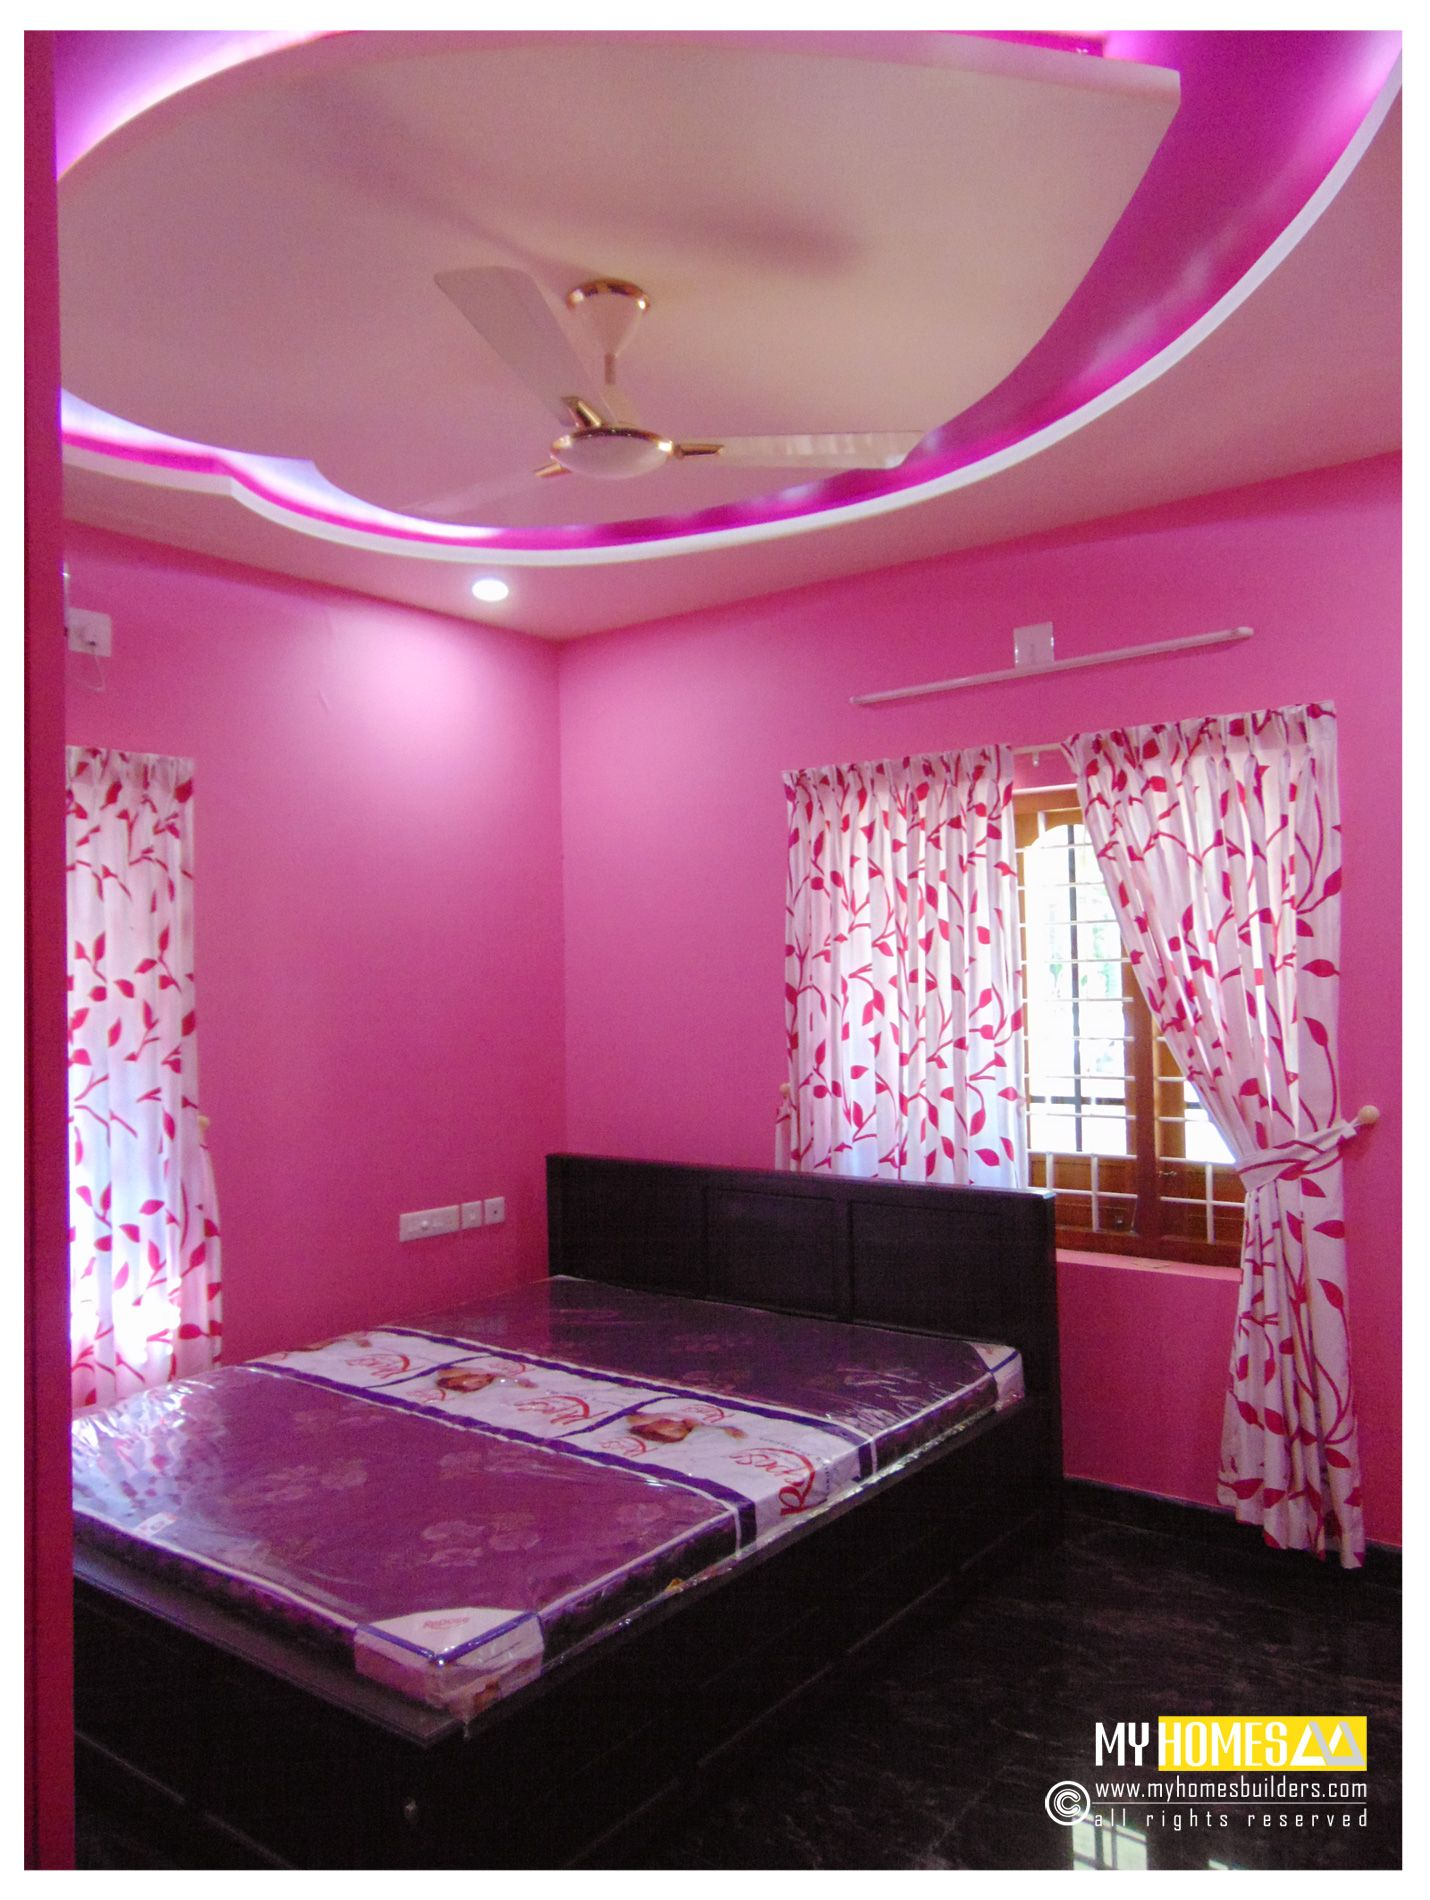 Kerala bedroom interior designs best bed room interior designs for one of our client from Latest design for master bedroom